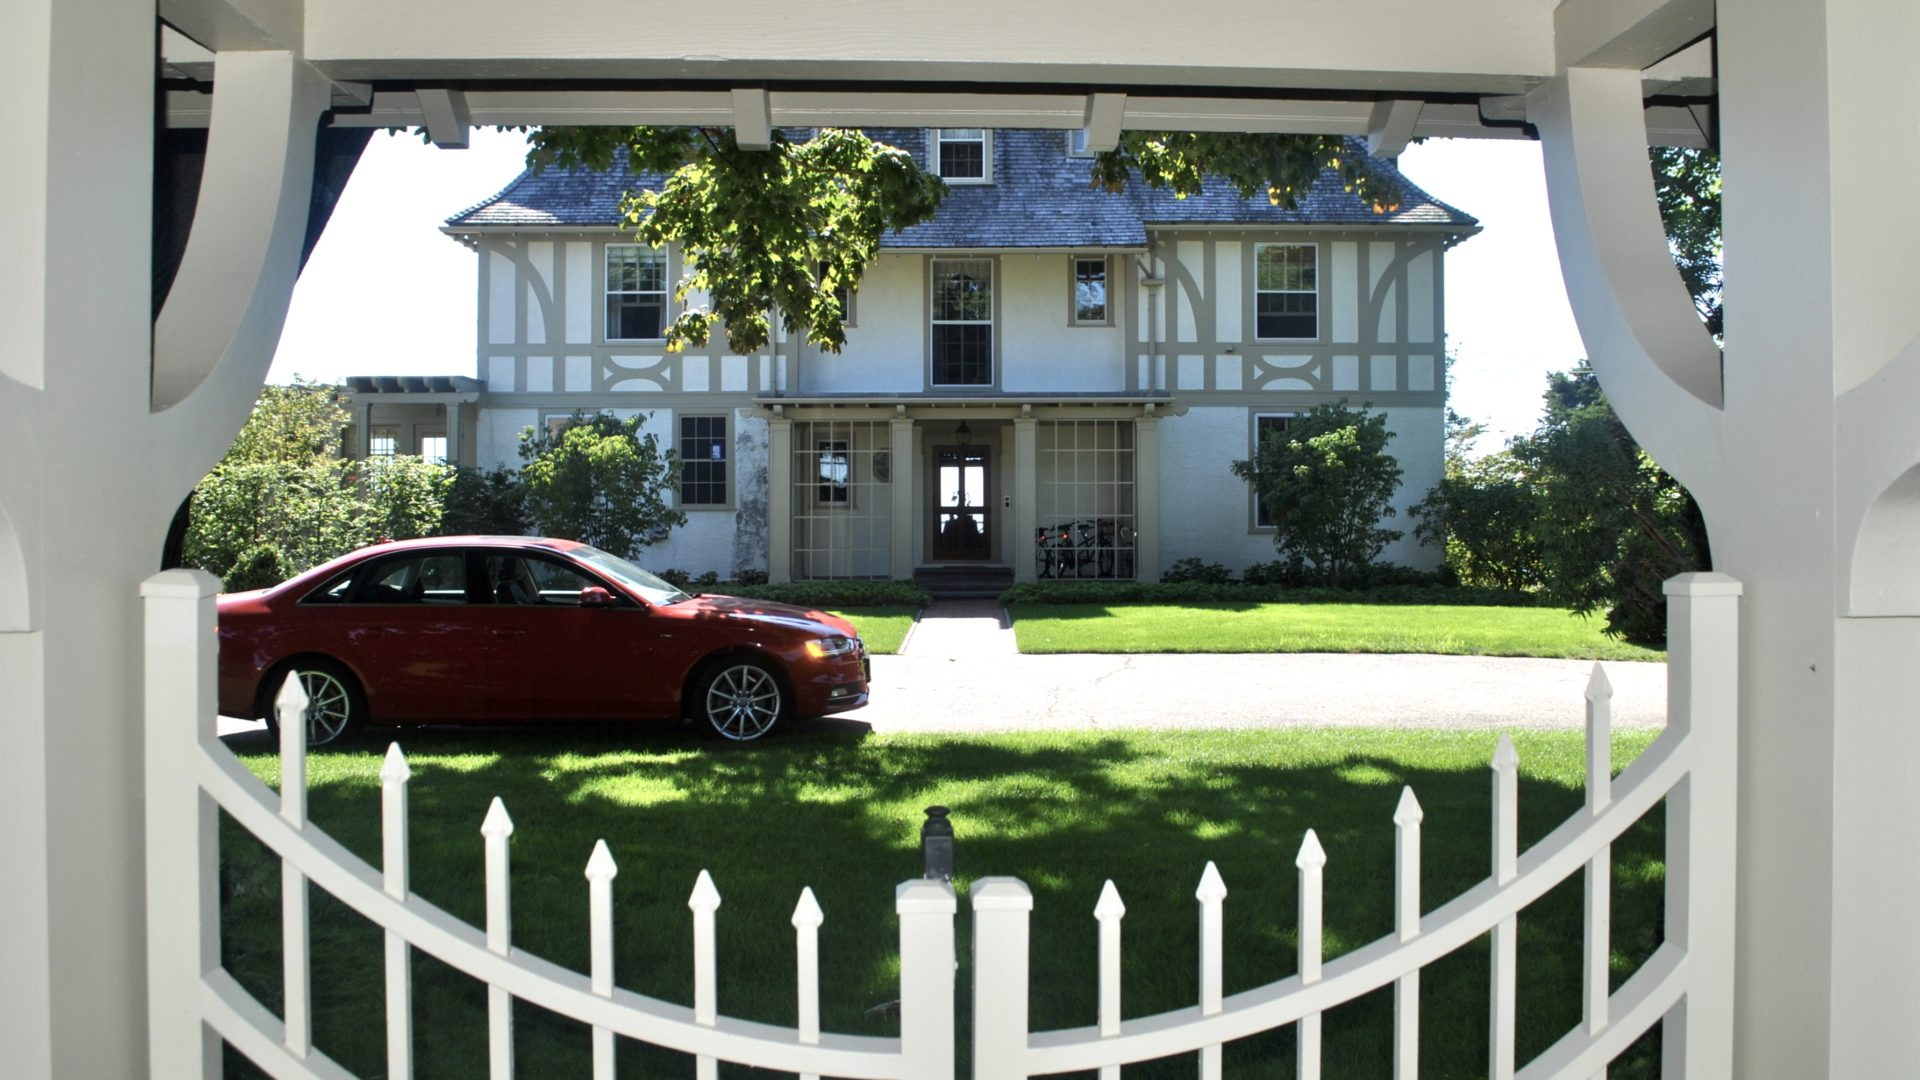 Lifestyle Blogger Jenny Meassick of Chocolate and Lace shares her trip to Watch Hill, Rhode Island USA